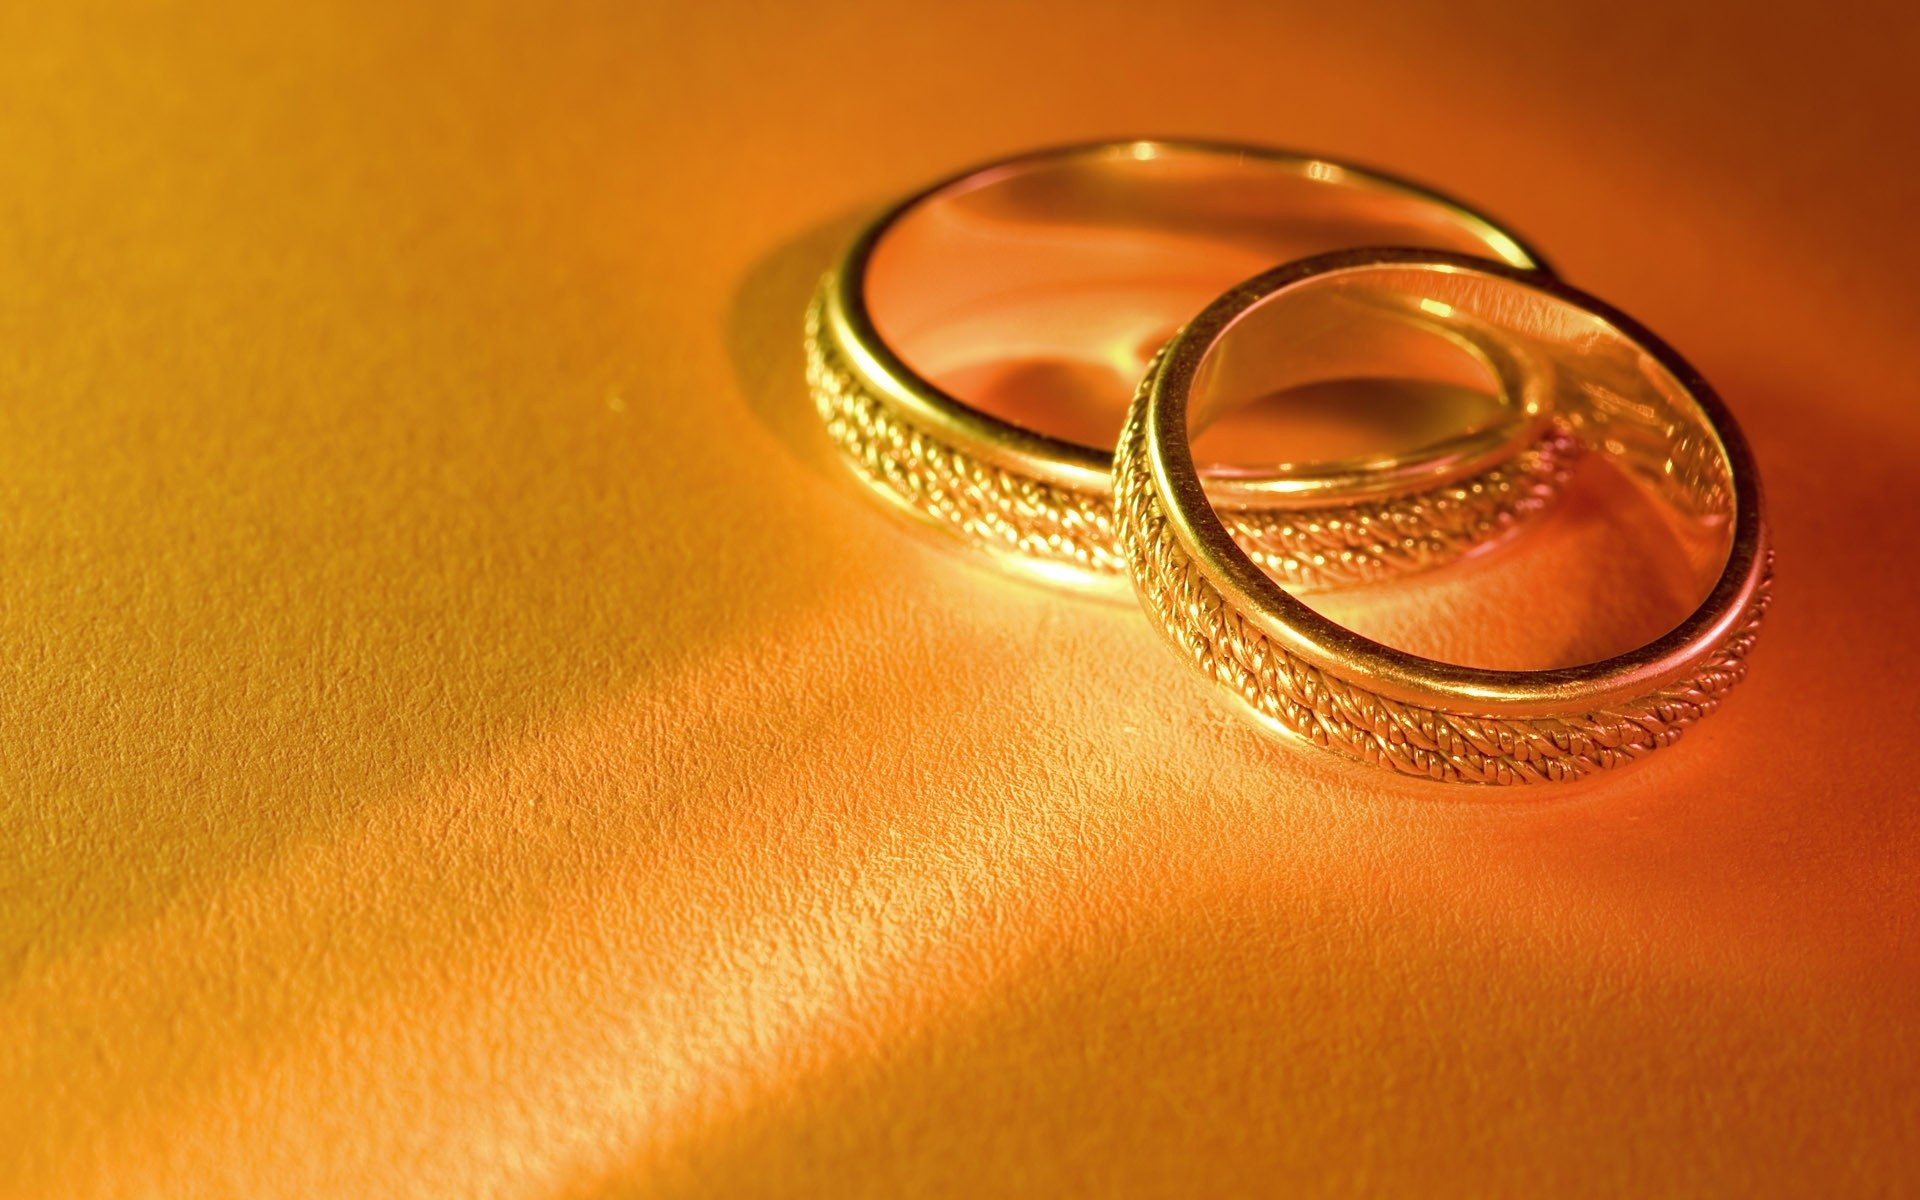 yellow gold wedding rings gold wedding rings Steps to Take When Buying Yellow Gold Wedding Rings CHECK Yellow Gold Engagement Rings